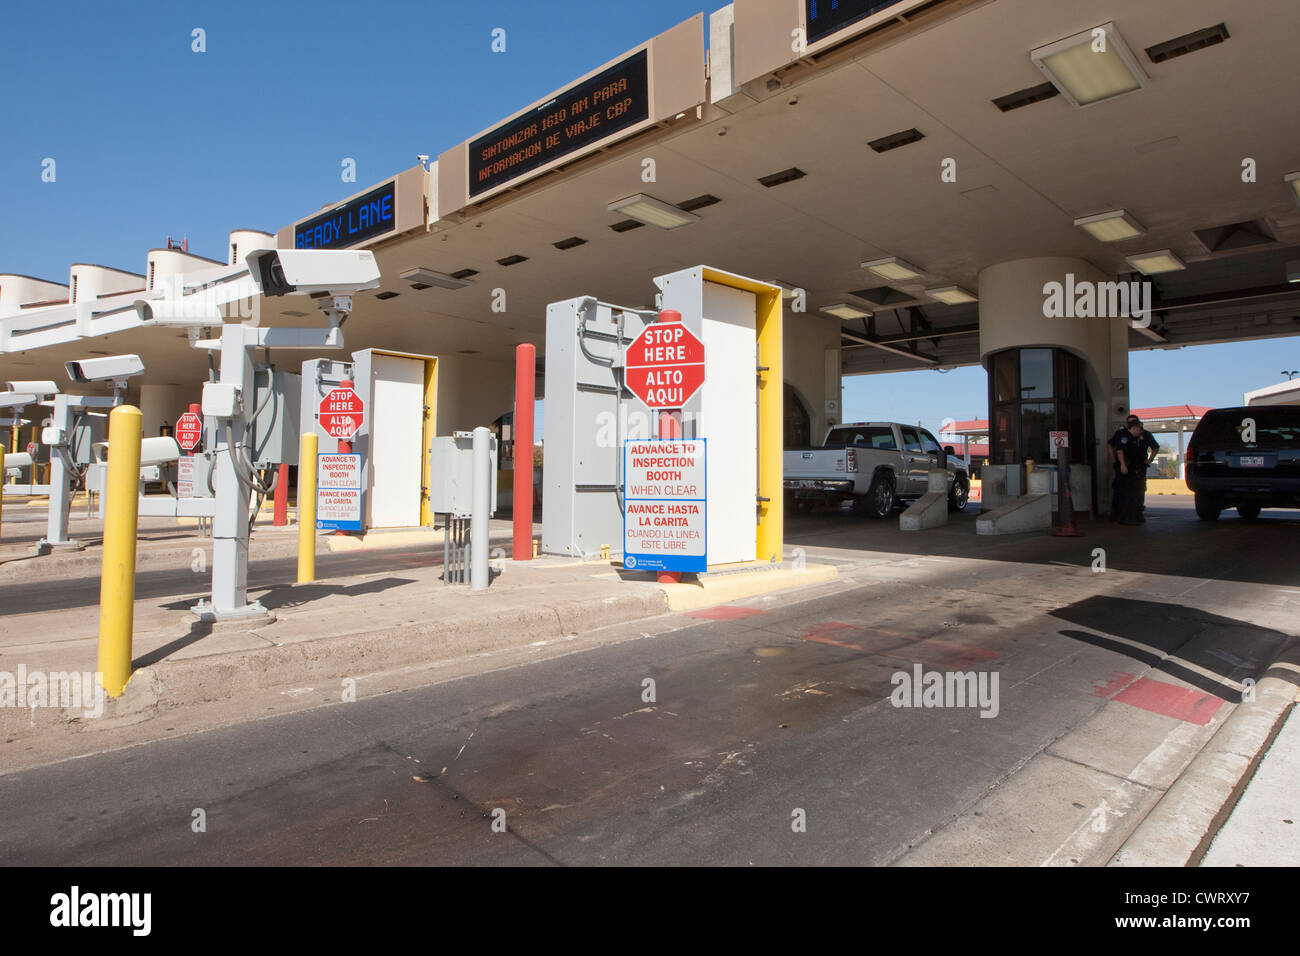 Bilingual sings in English and Spanish with information at the Laredo, Texas port of entry from Mexico - Stock Image